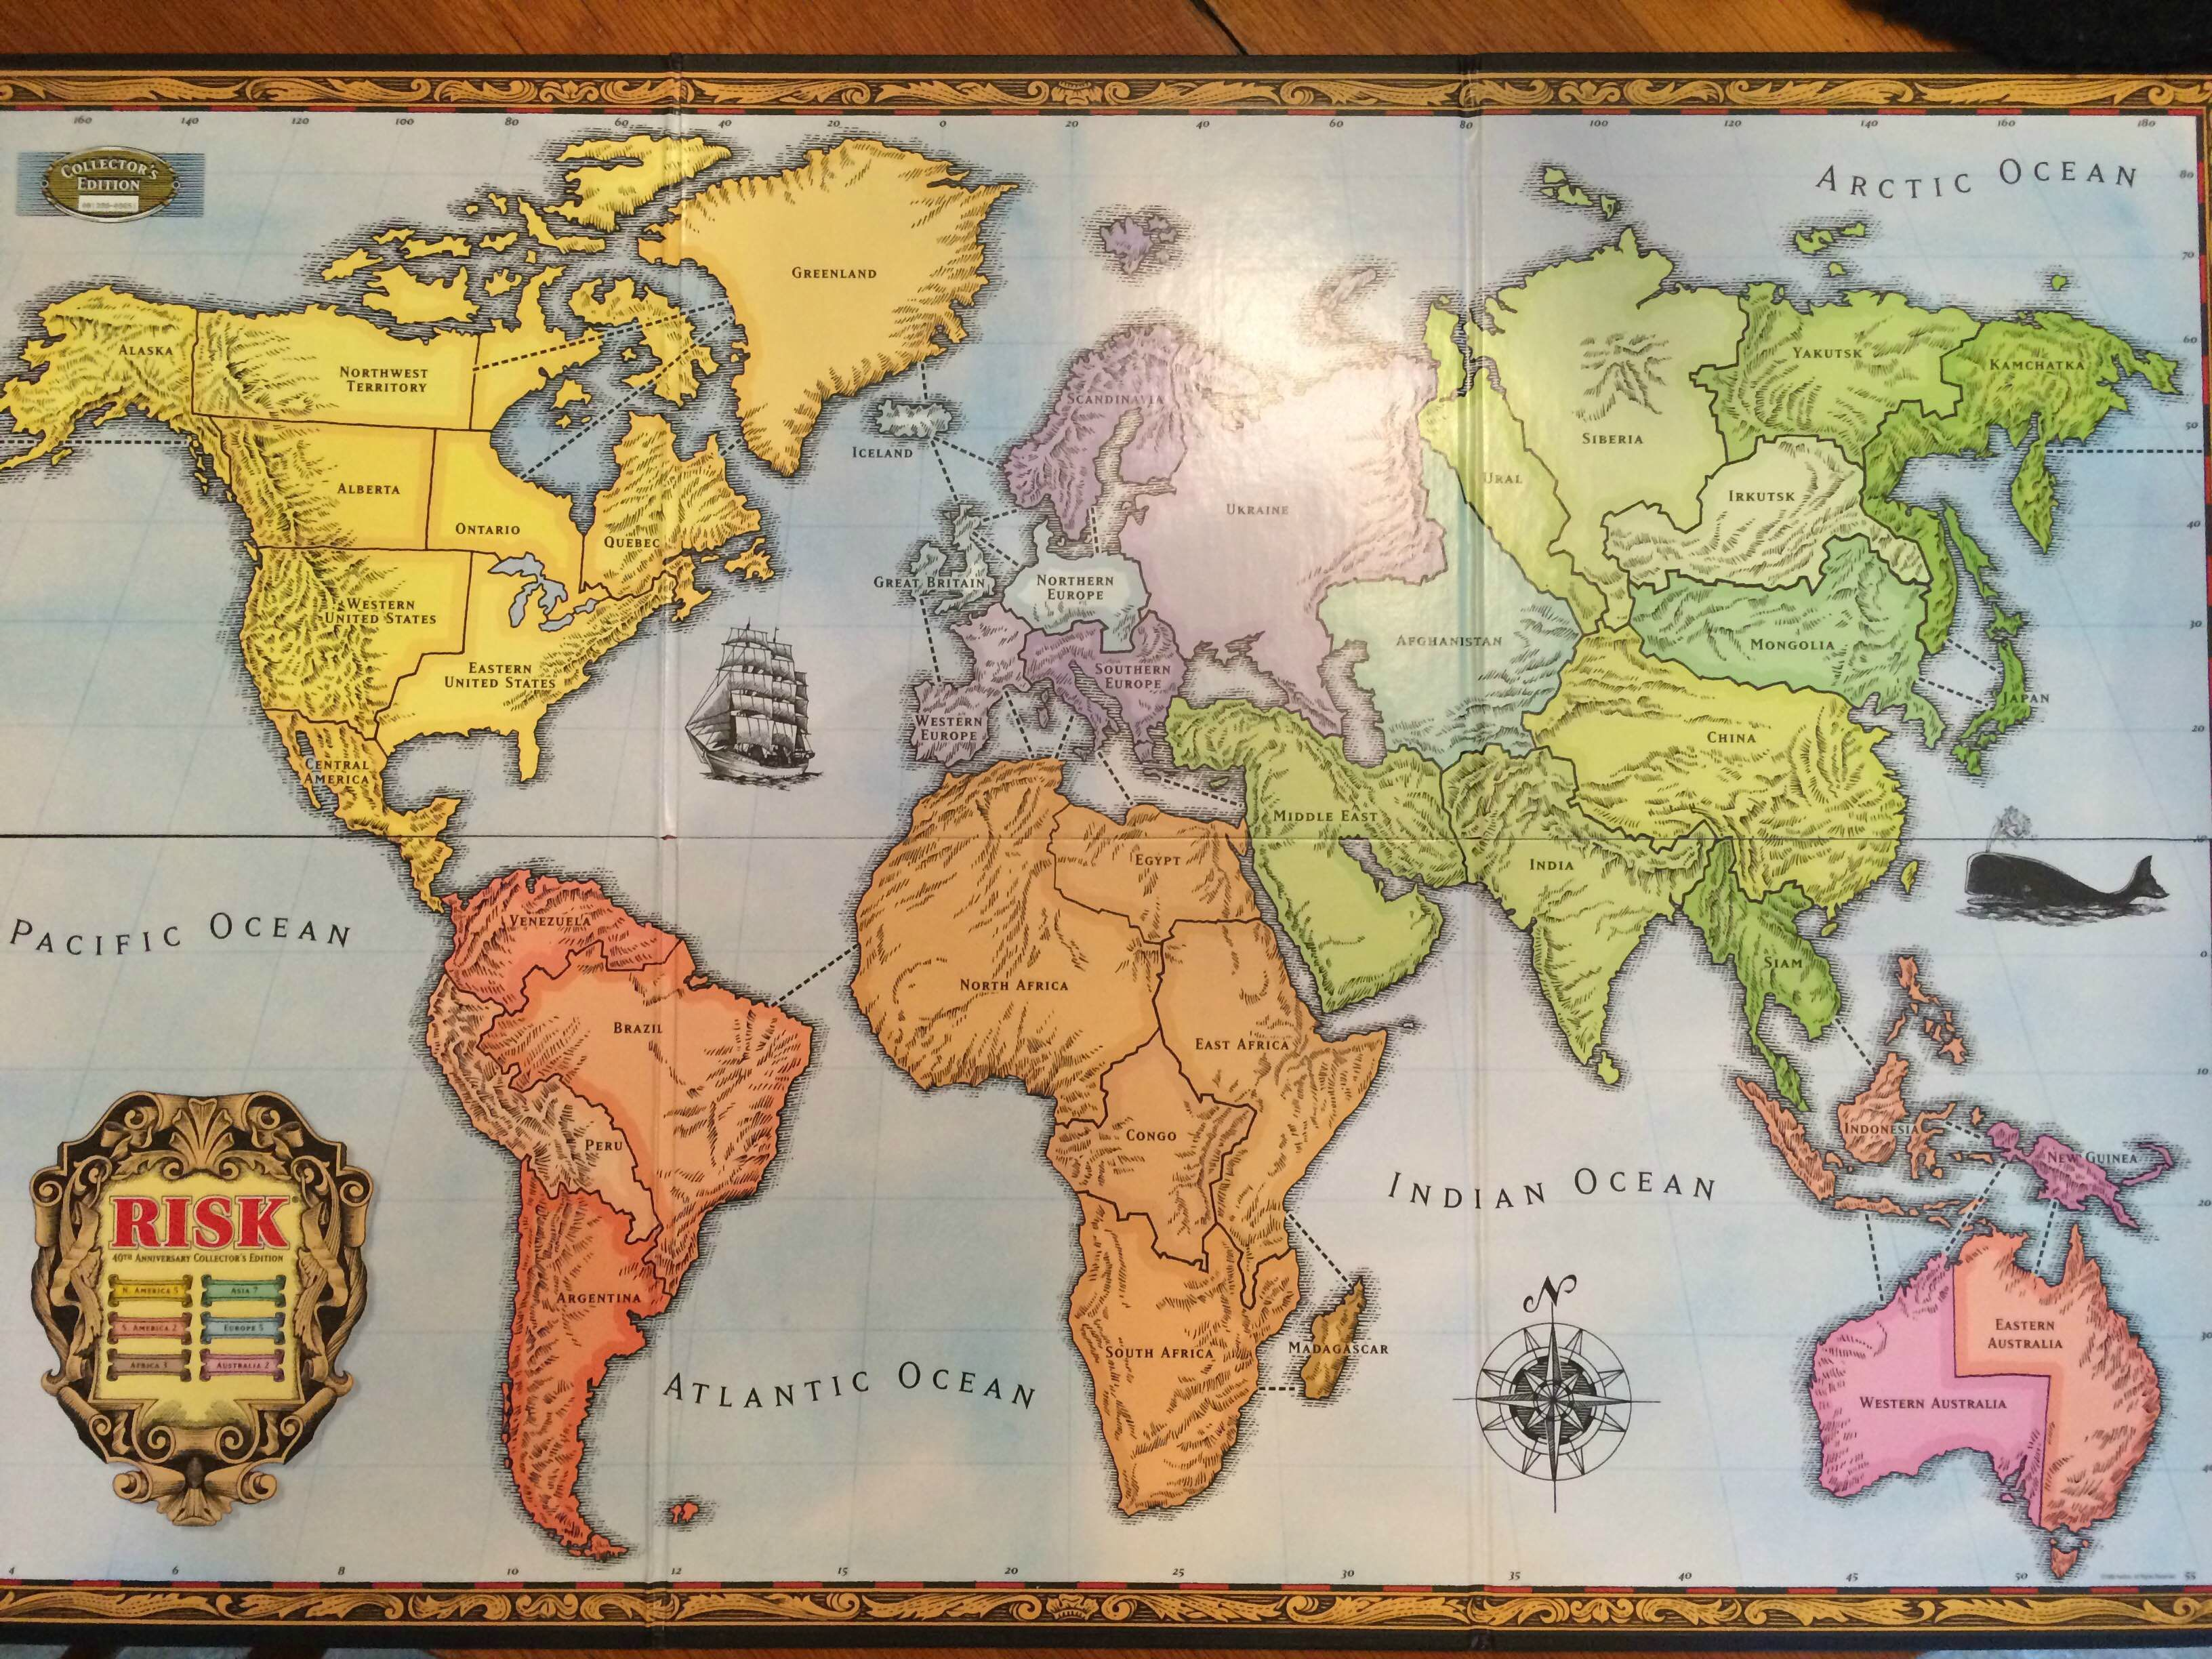 Pin by Spartaco Albertarelli on Neurology Board games